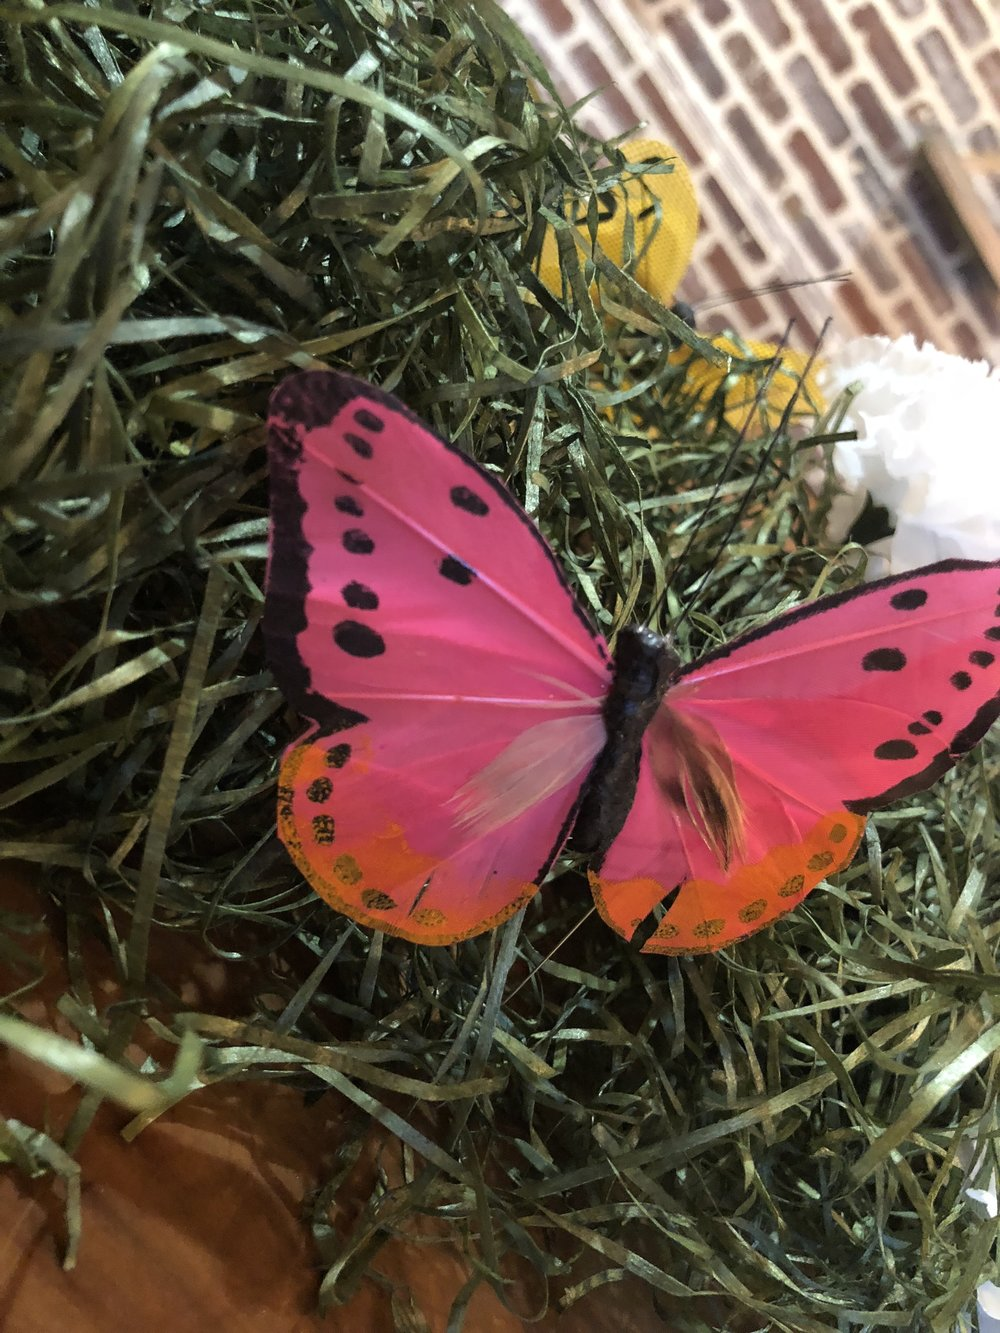 The grass and the butterflies were both found in the floral section at the Dollar Tree. Used three packs of the grass filler and 3 packages of butterfly and dragon flies to spread out.